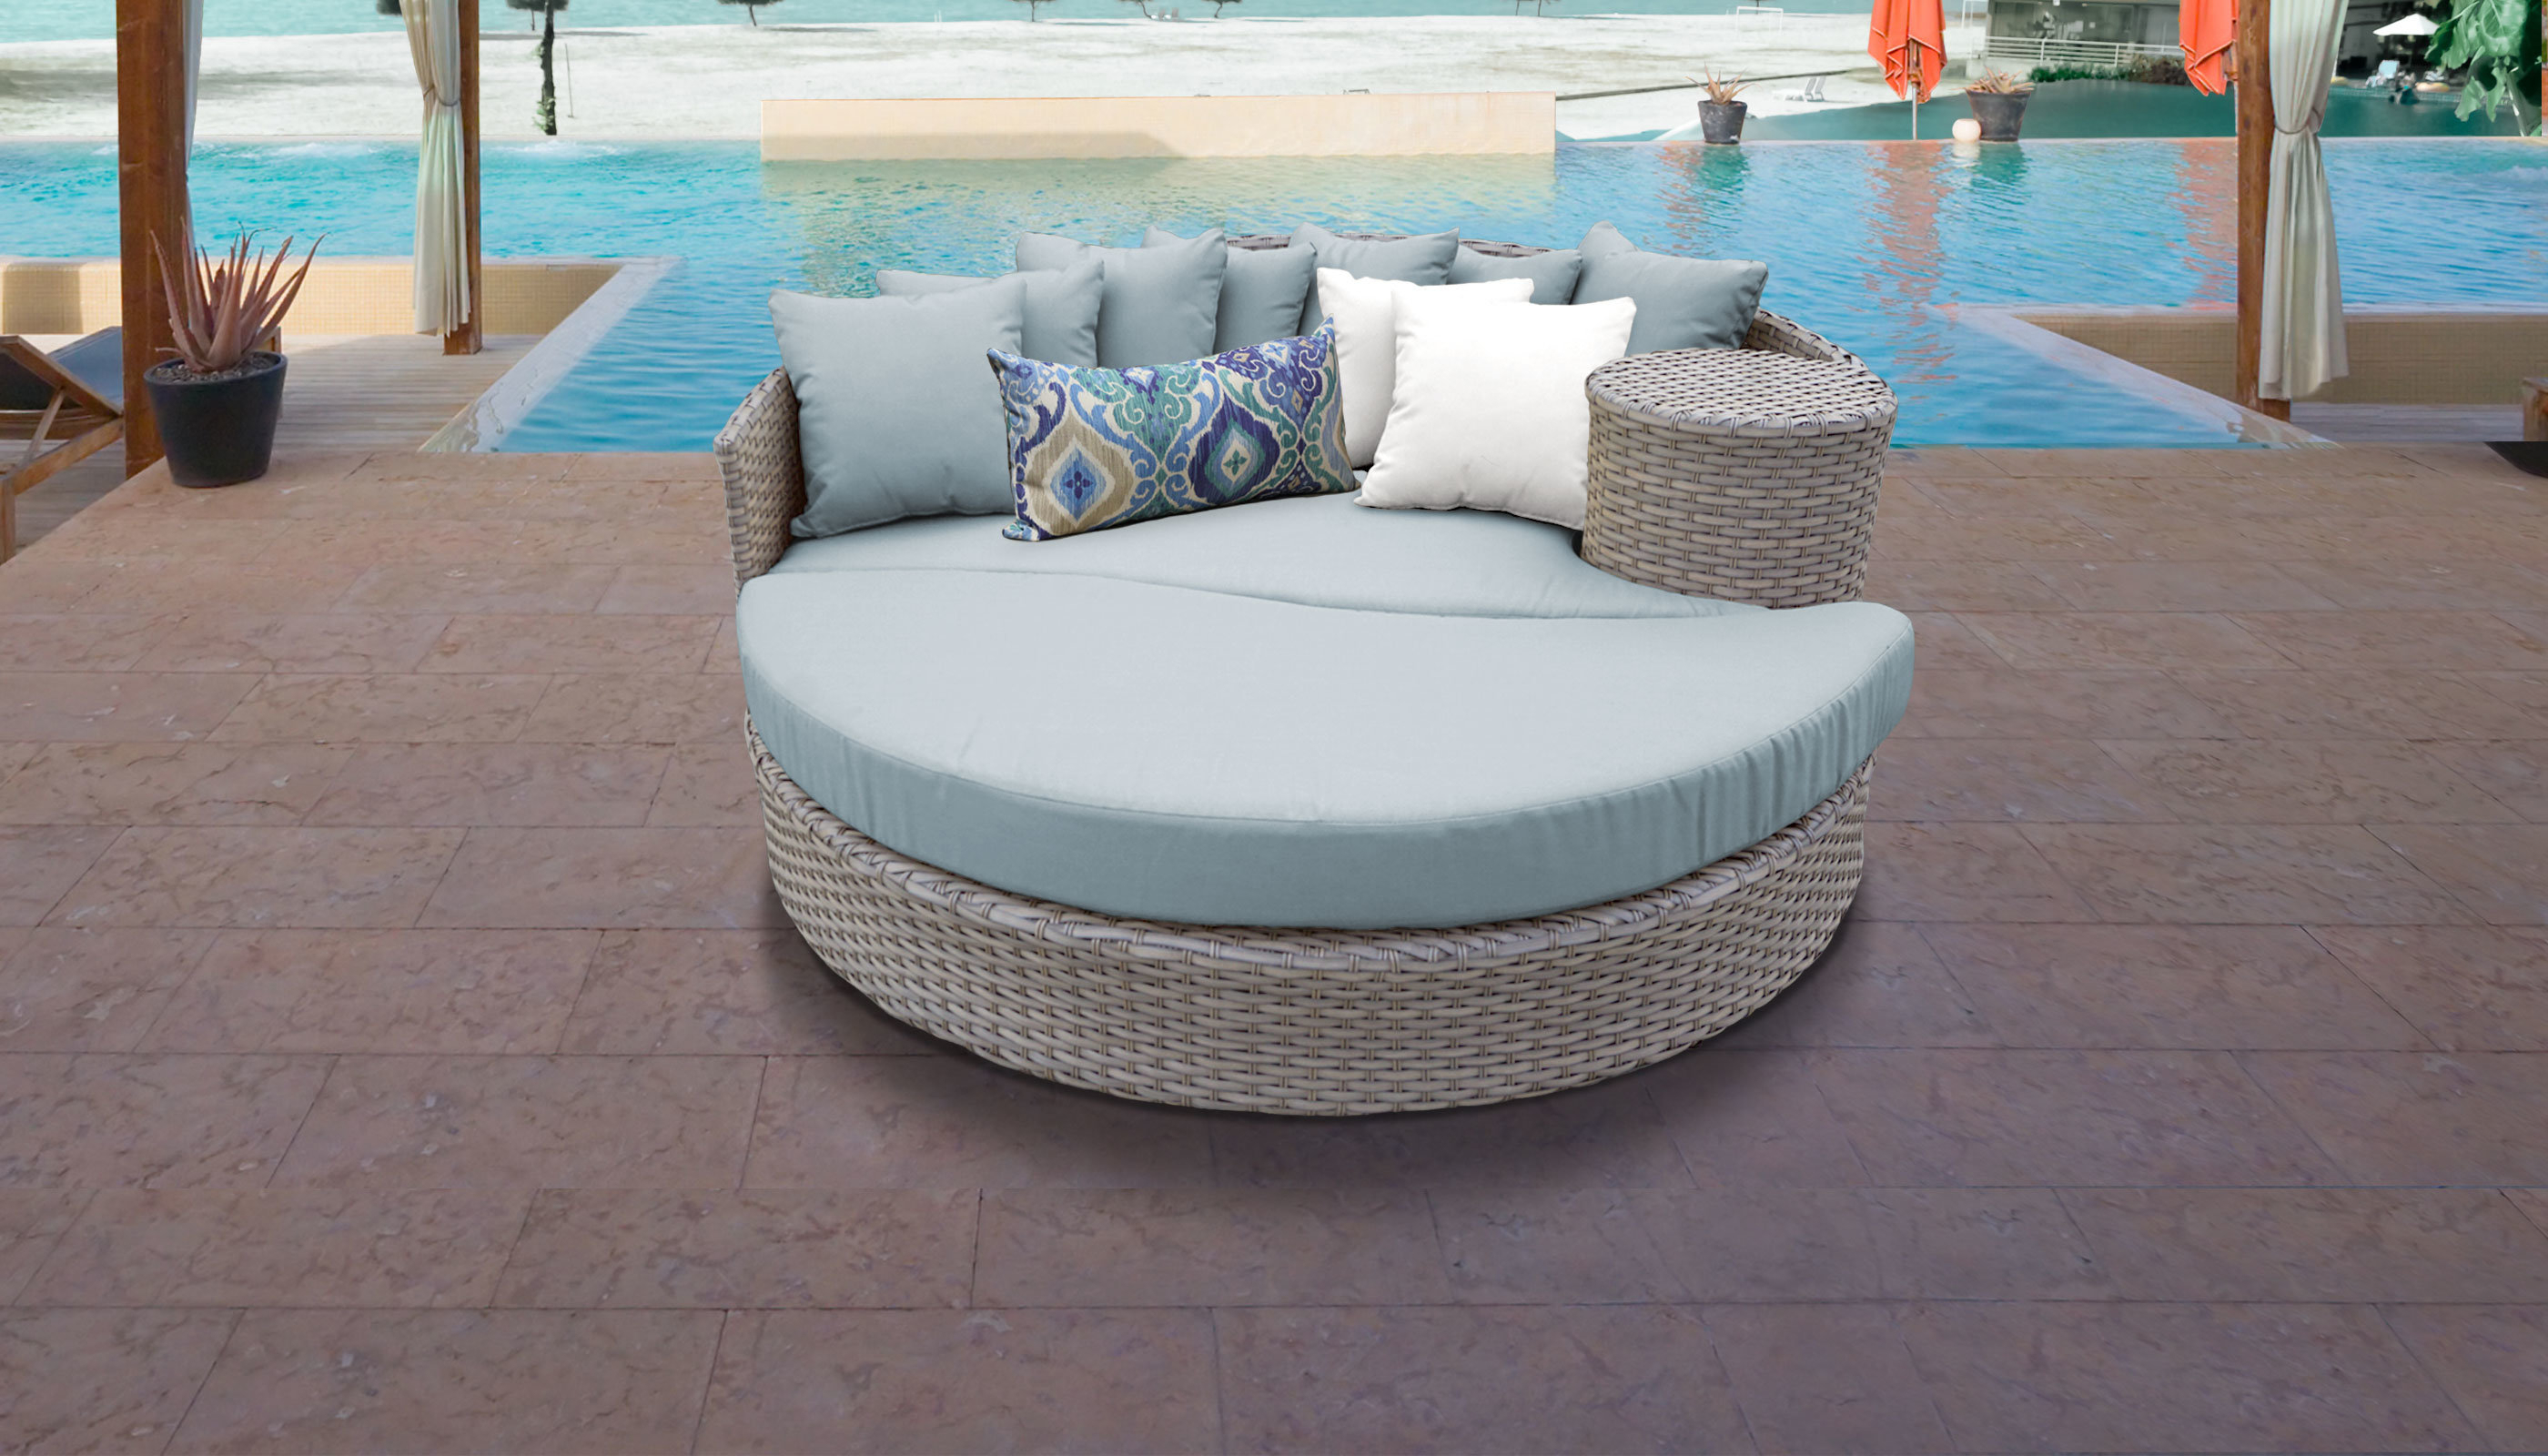 Falmouth Patio Daybeds With Cushions Pertaining To Preferred Rochford Circular Patio Daybed With Cushions (View 5 of 20)